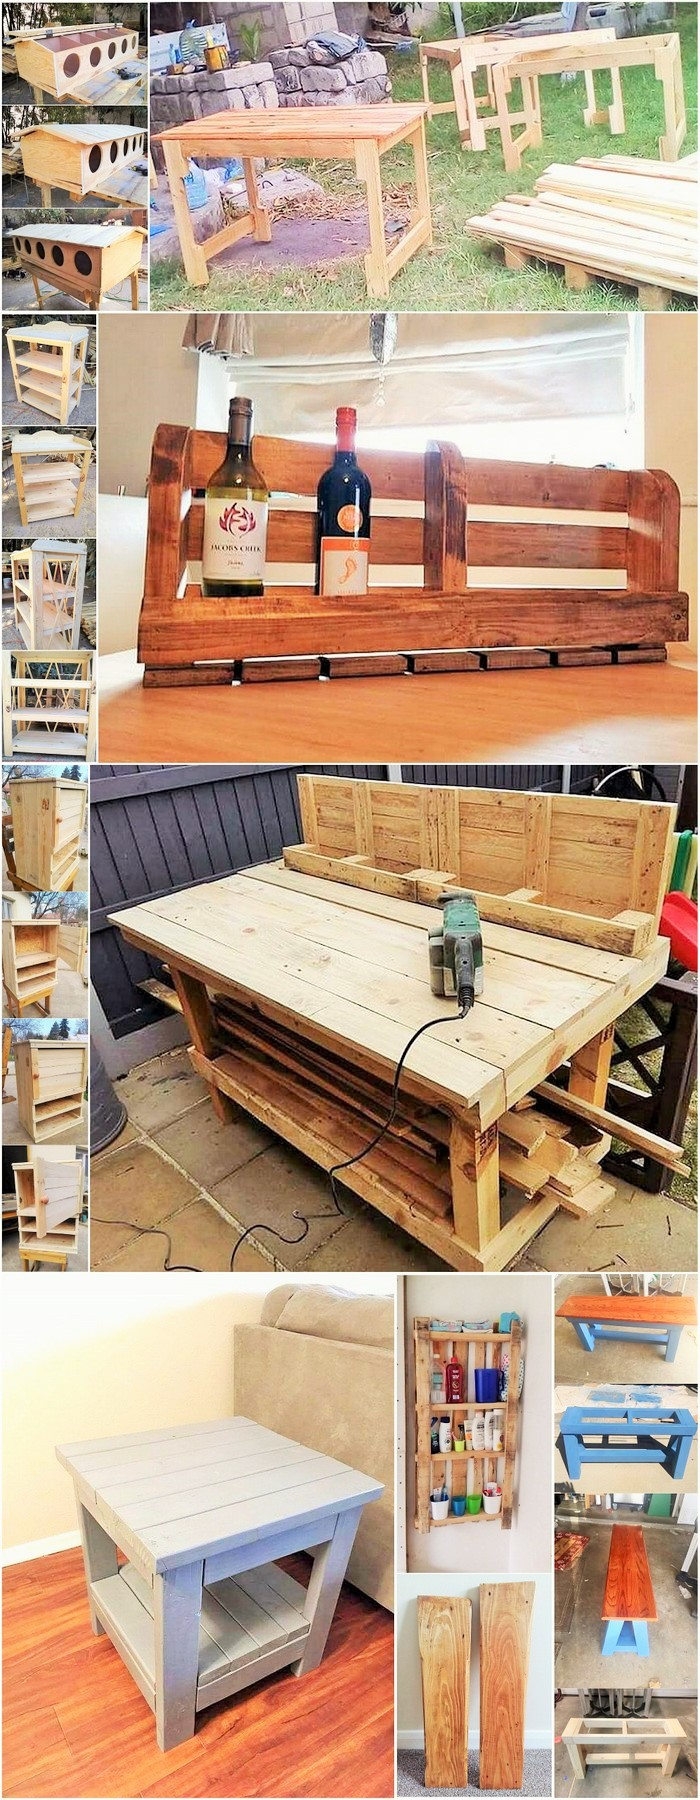 Old-Pallet- Diy-Recycle-Things-Projects 00